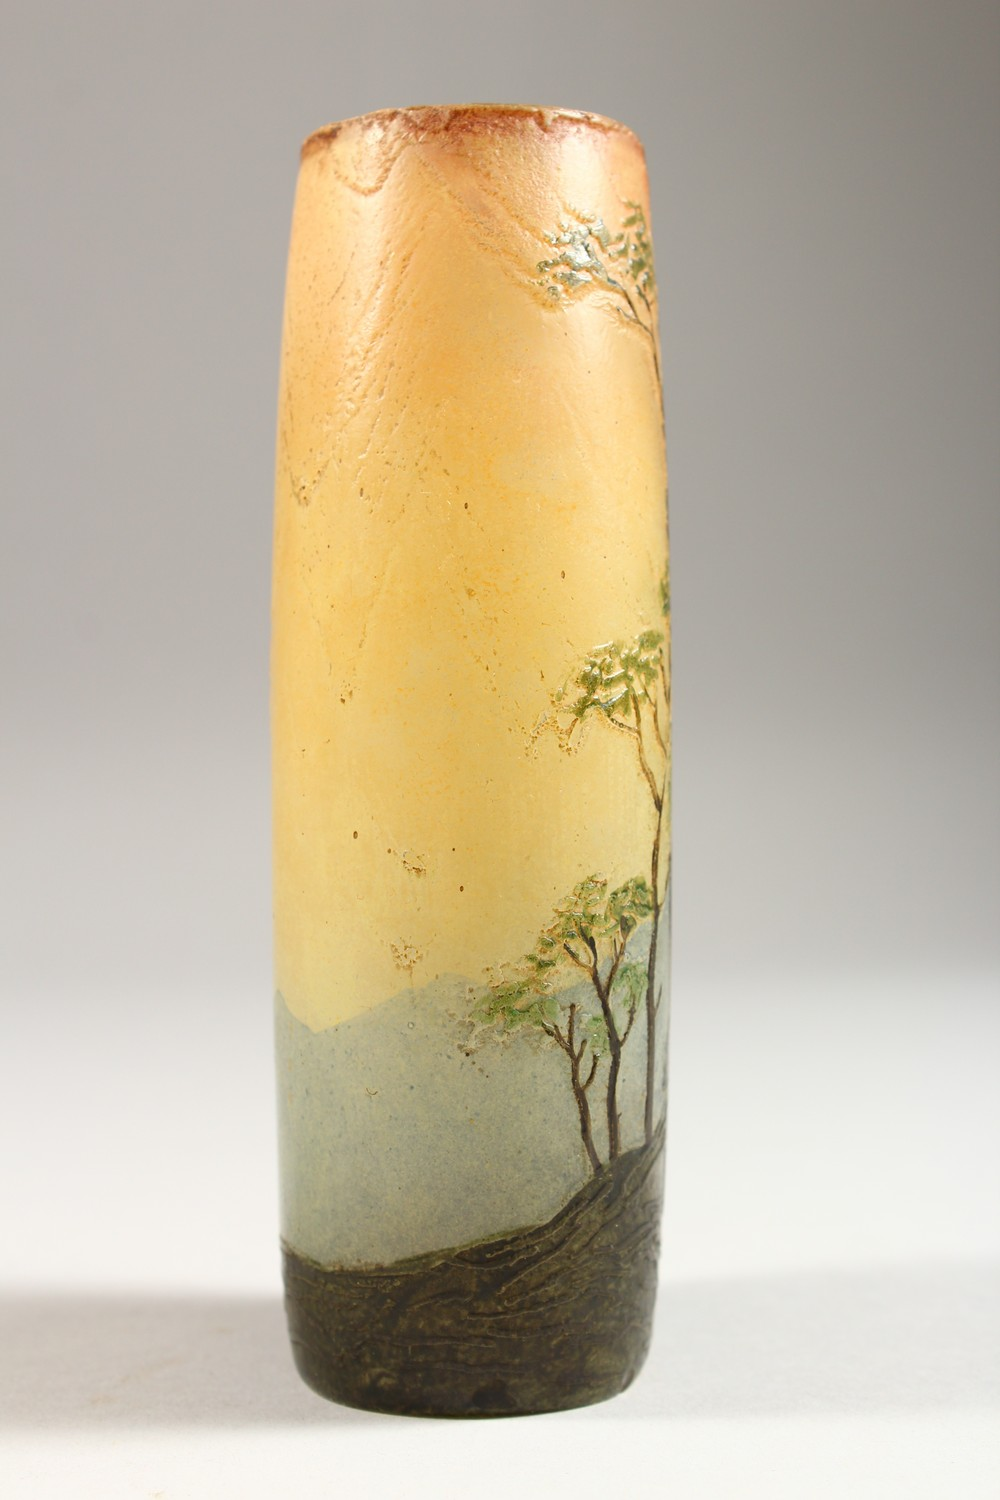 Lot 1081 - LEGRAS A GOOD CAMEO GLASS VASE, shepherdess with sheep on a hilltop with trees. Signed. 6ins high.